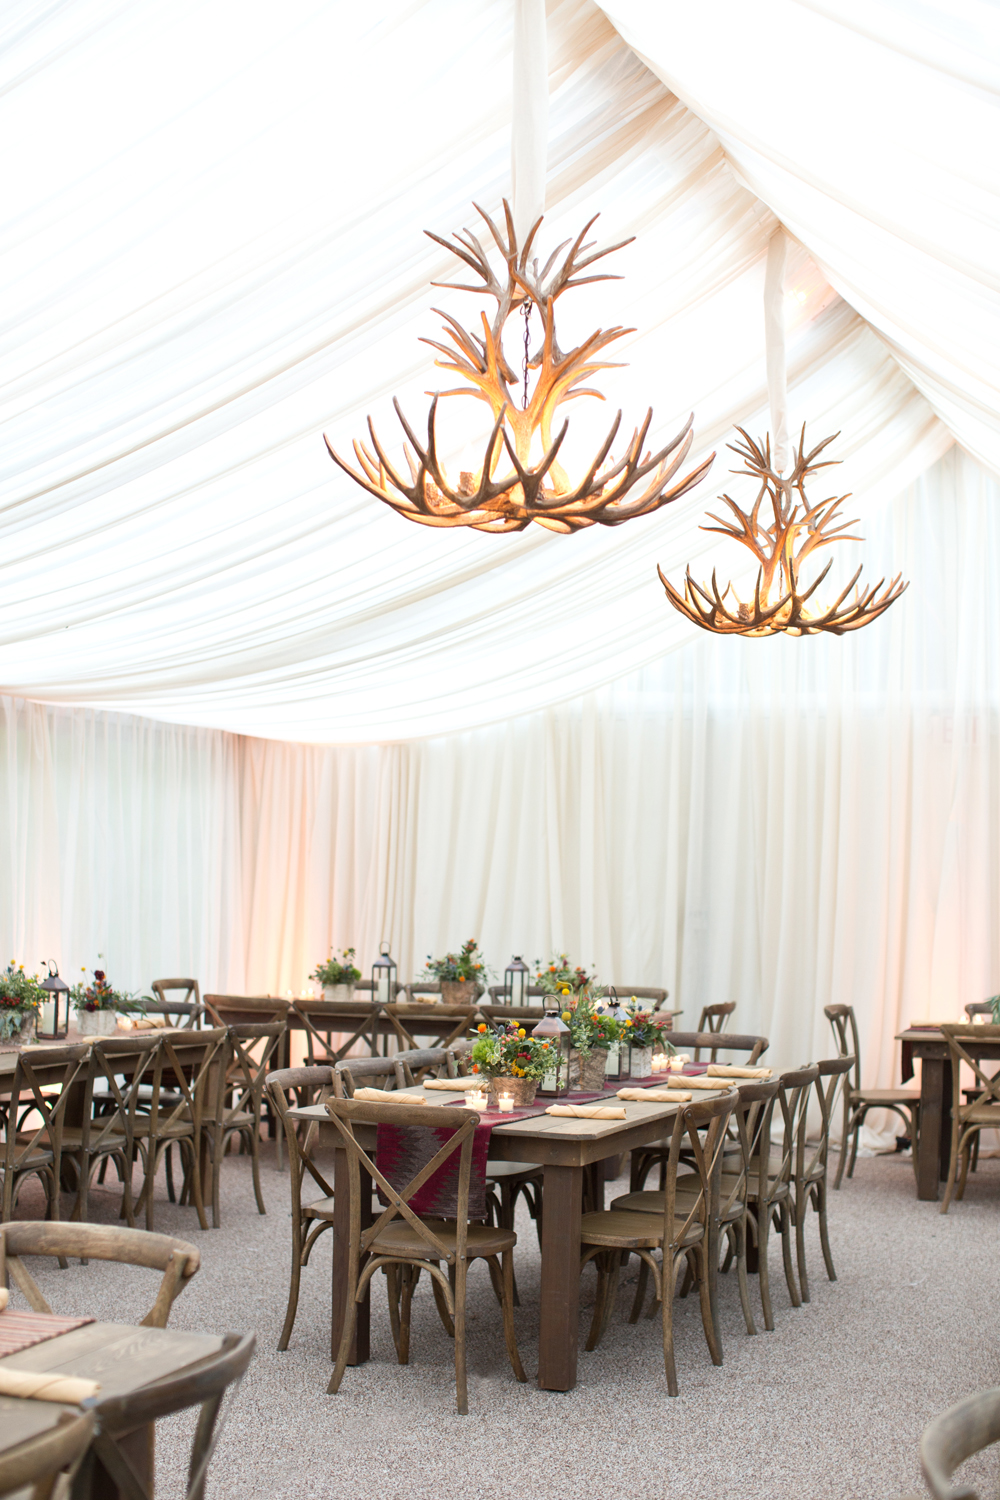 Rustic Dinner Party with Antler Chandeliers and Farm Tables